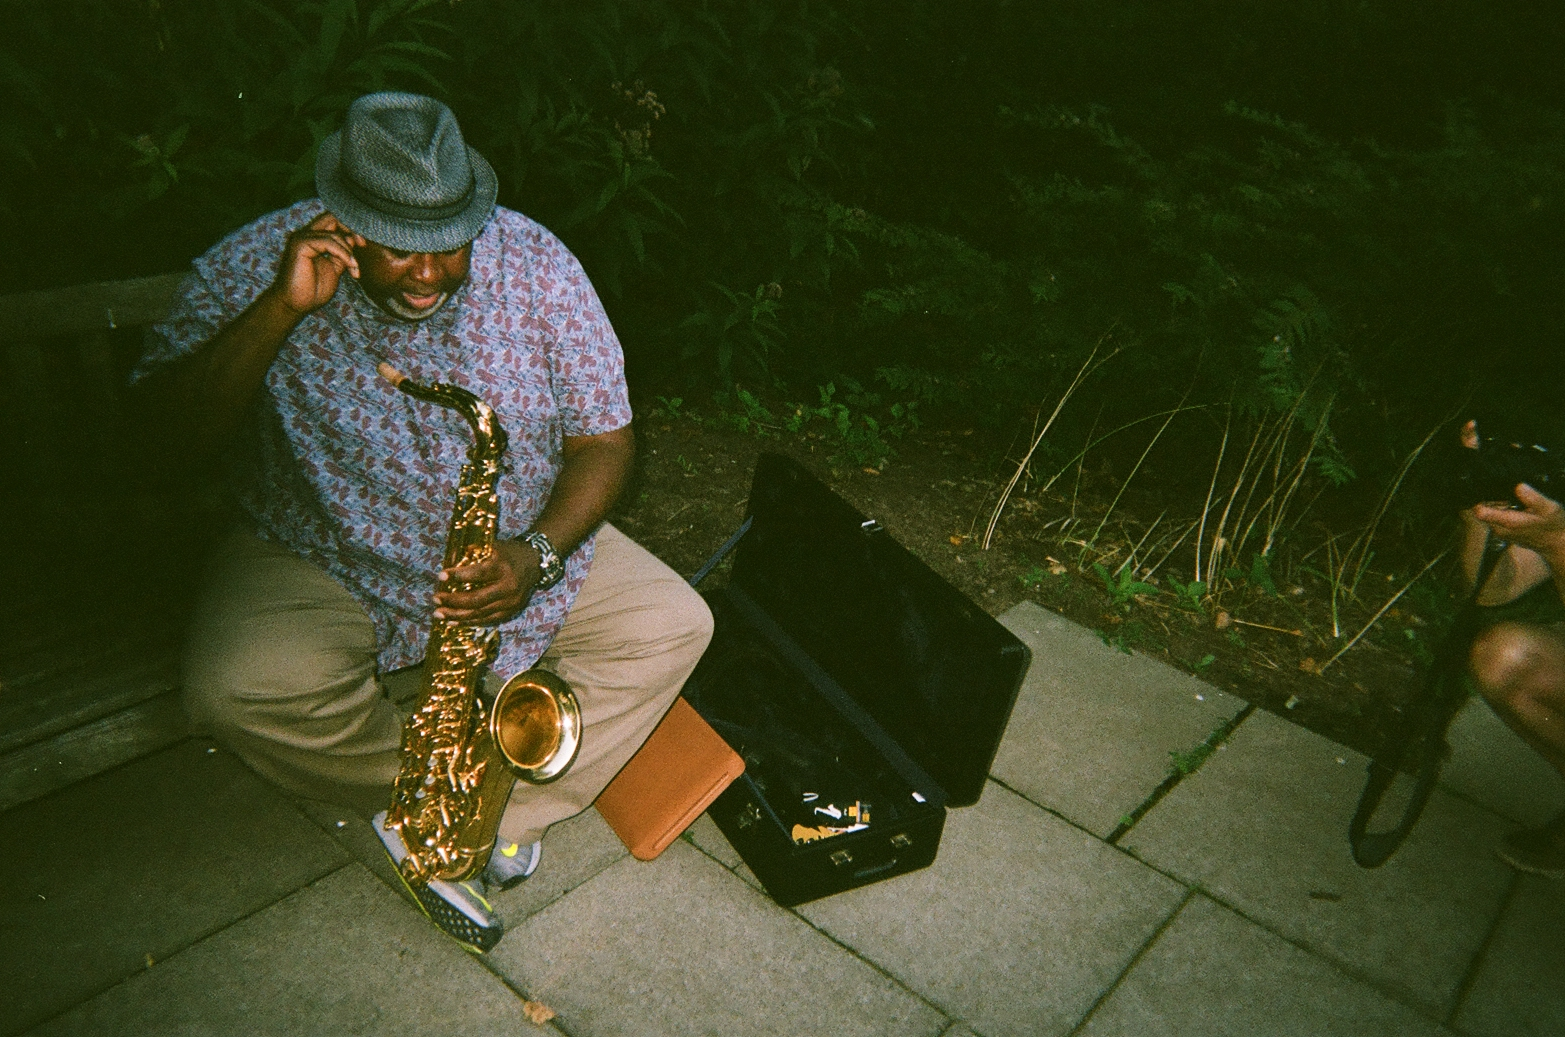 douglass sax photo no. 1.jpg